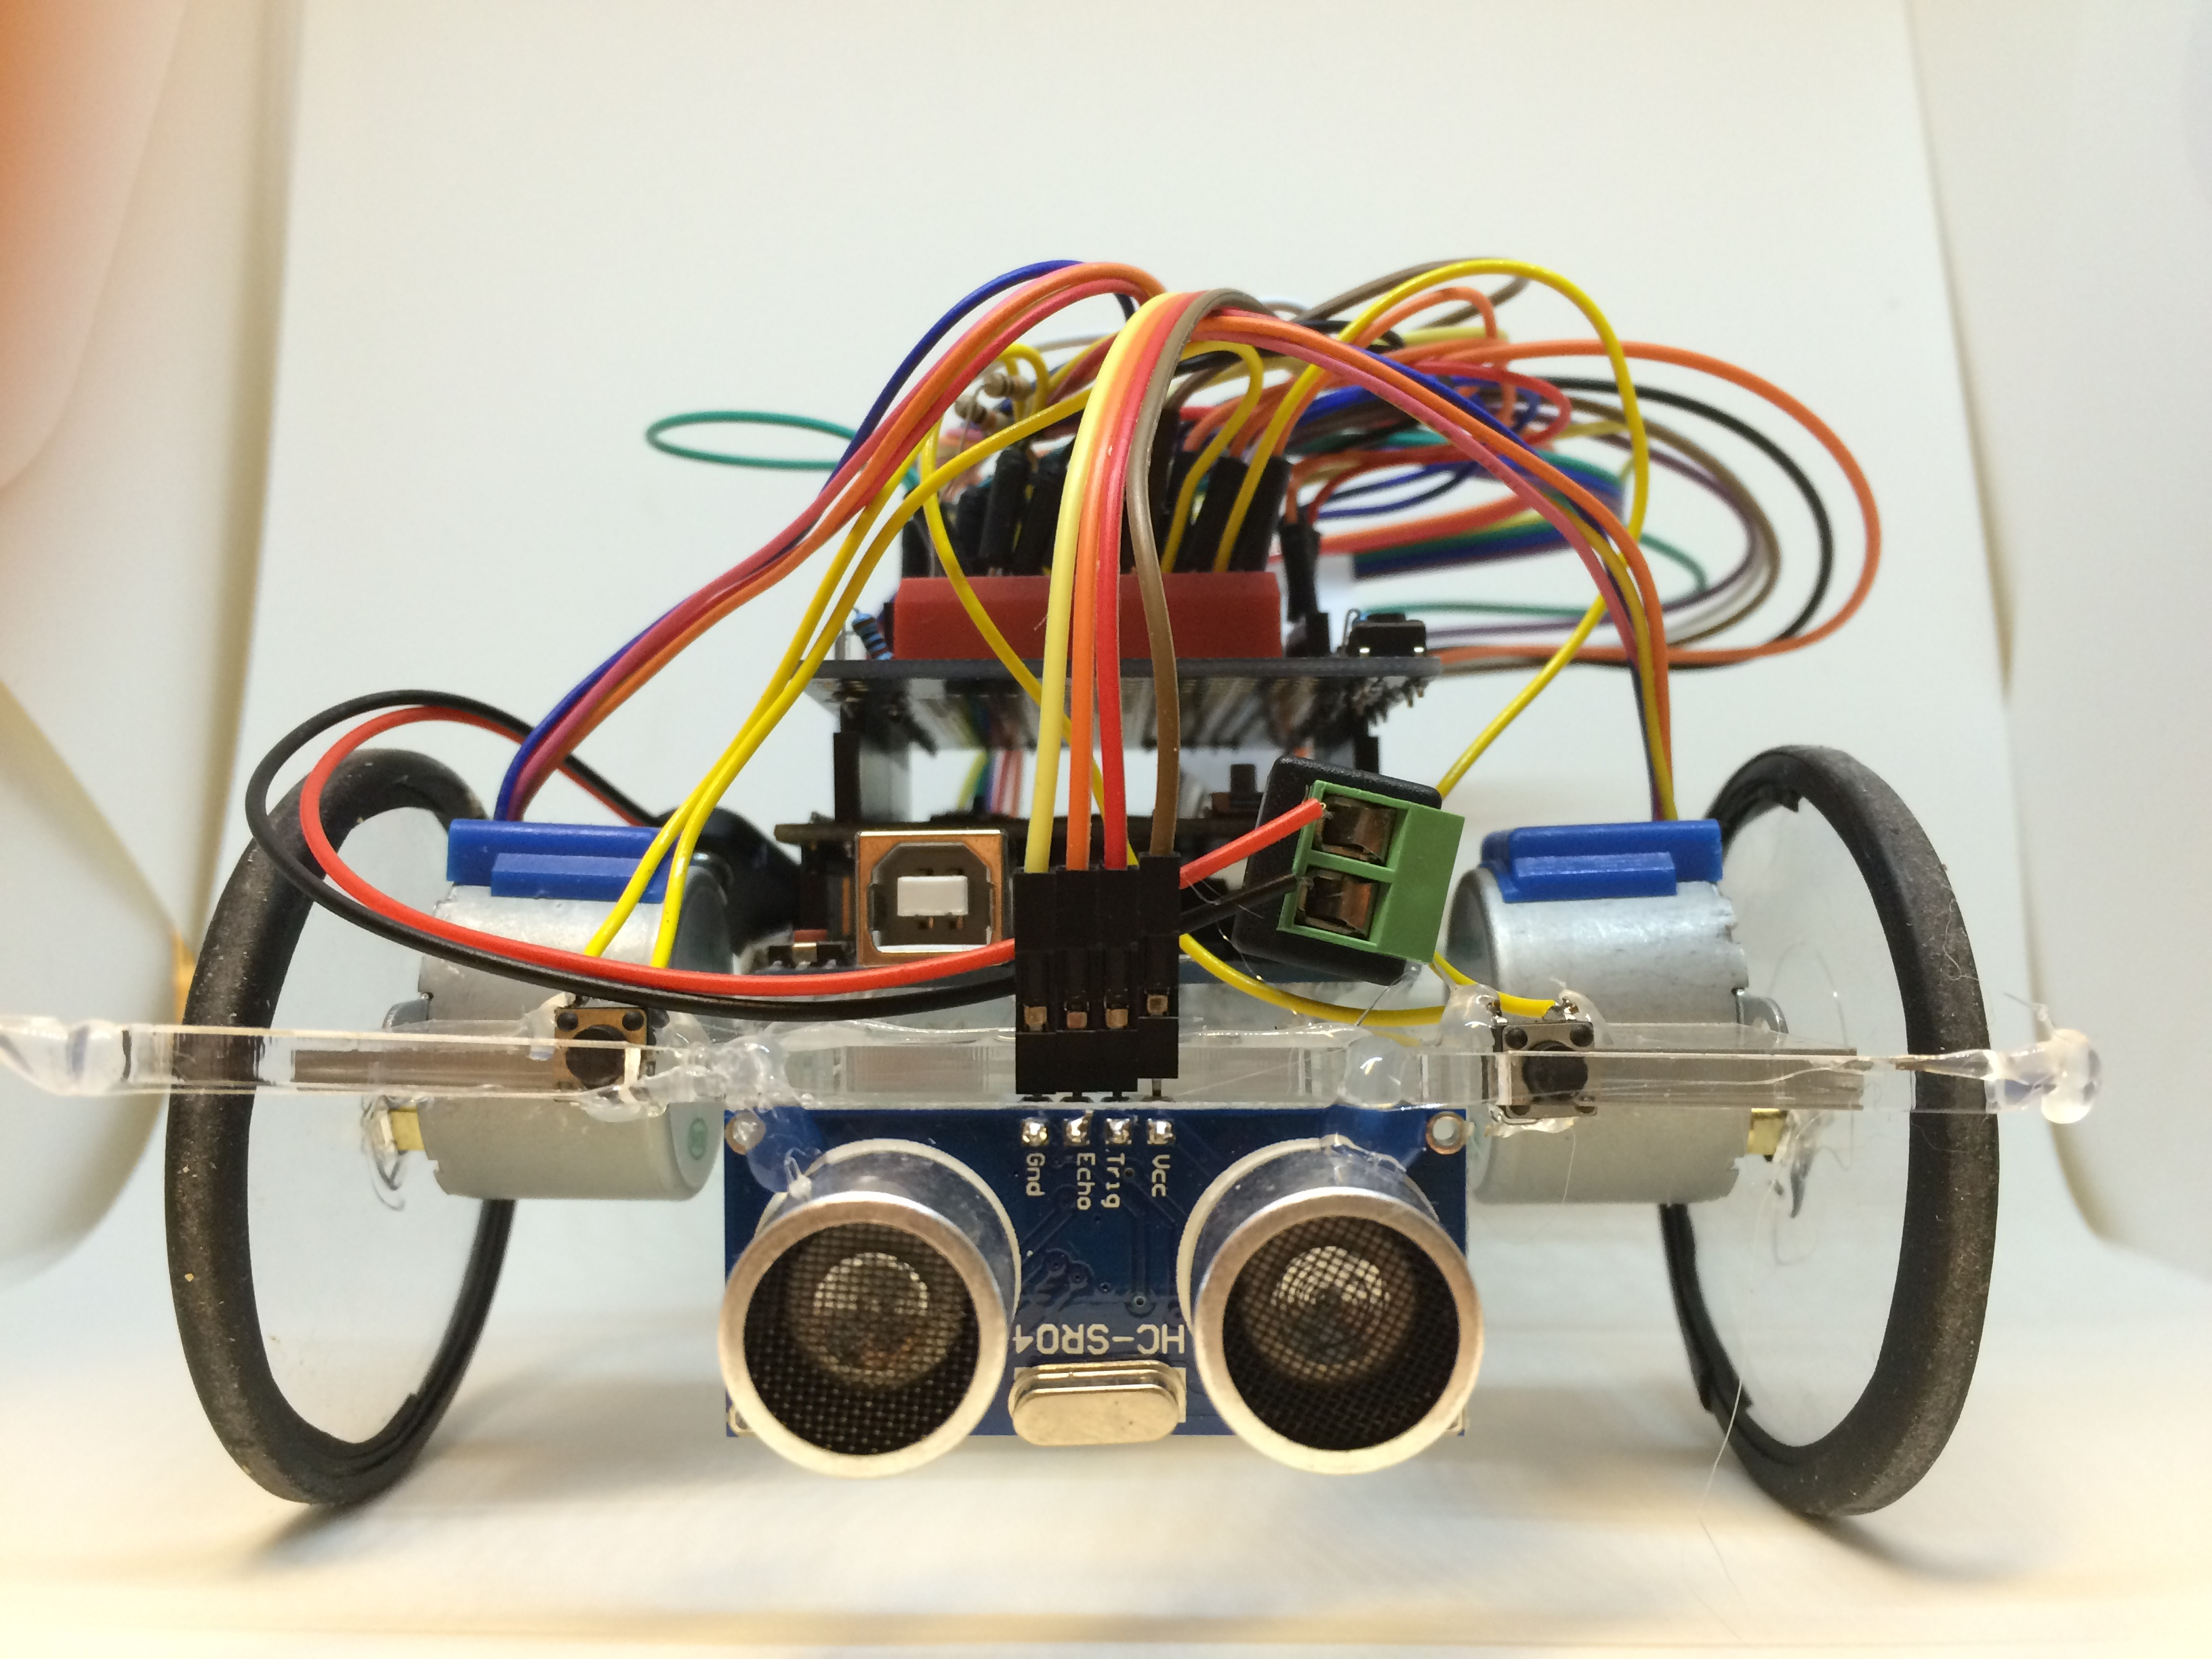 Picture of the robot with the Ping sensor attached.